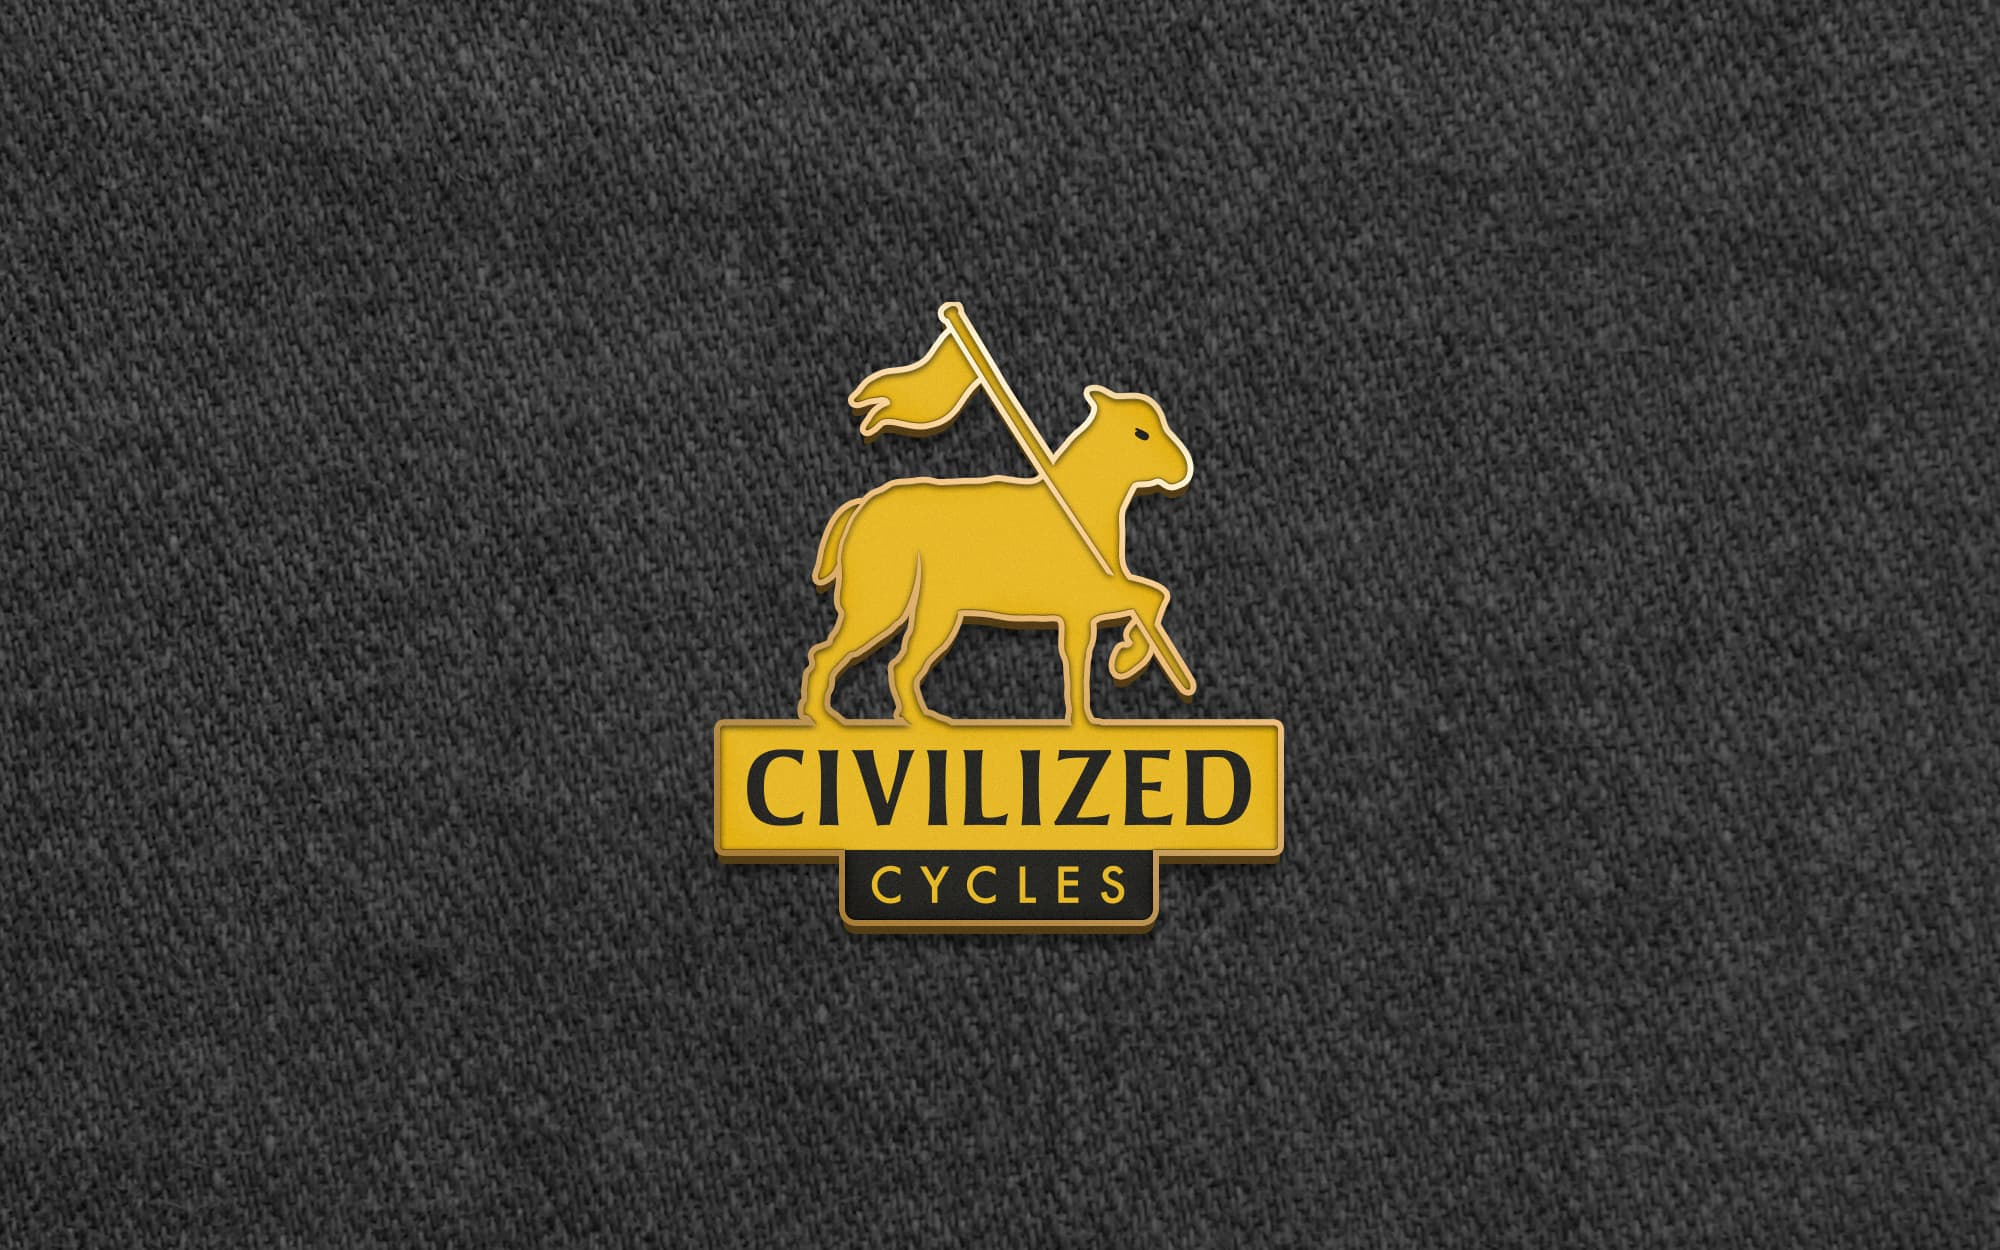 Civilized Cycles - Never Know Defeat